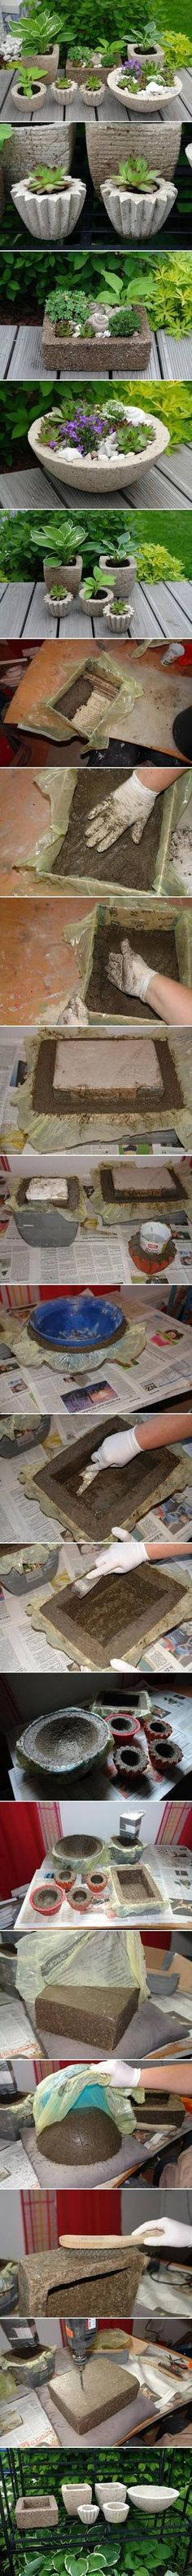 DIY Variety of Cement Planters DIY Projects